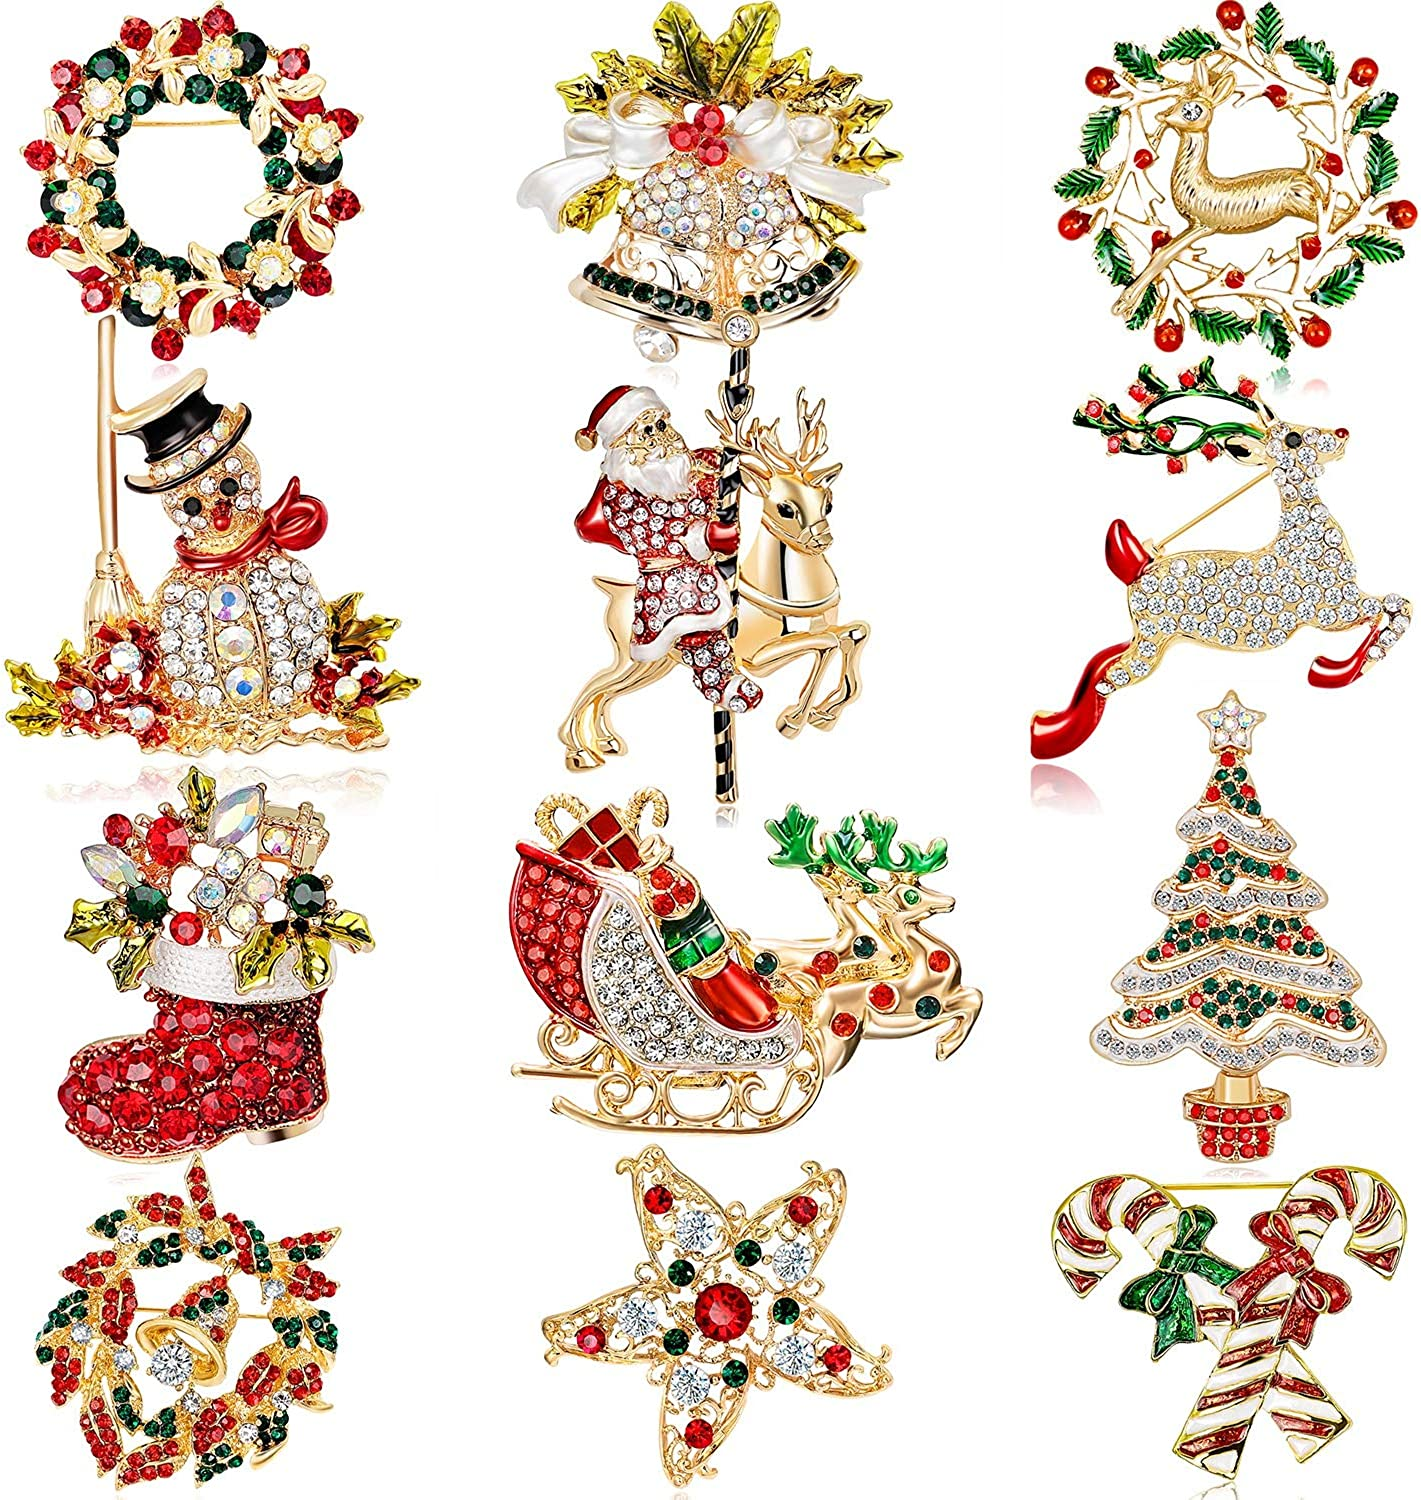 Hicarer 12 Pieces Enamel Christmas Brooch Pins Jewelry for Woman Kids Holiday Xmas Gift